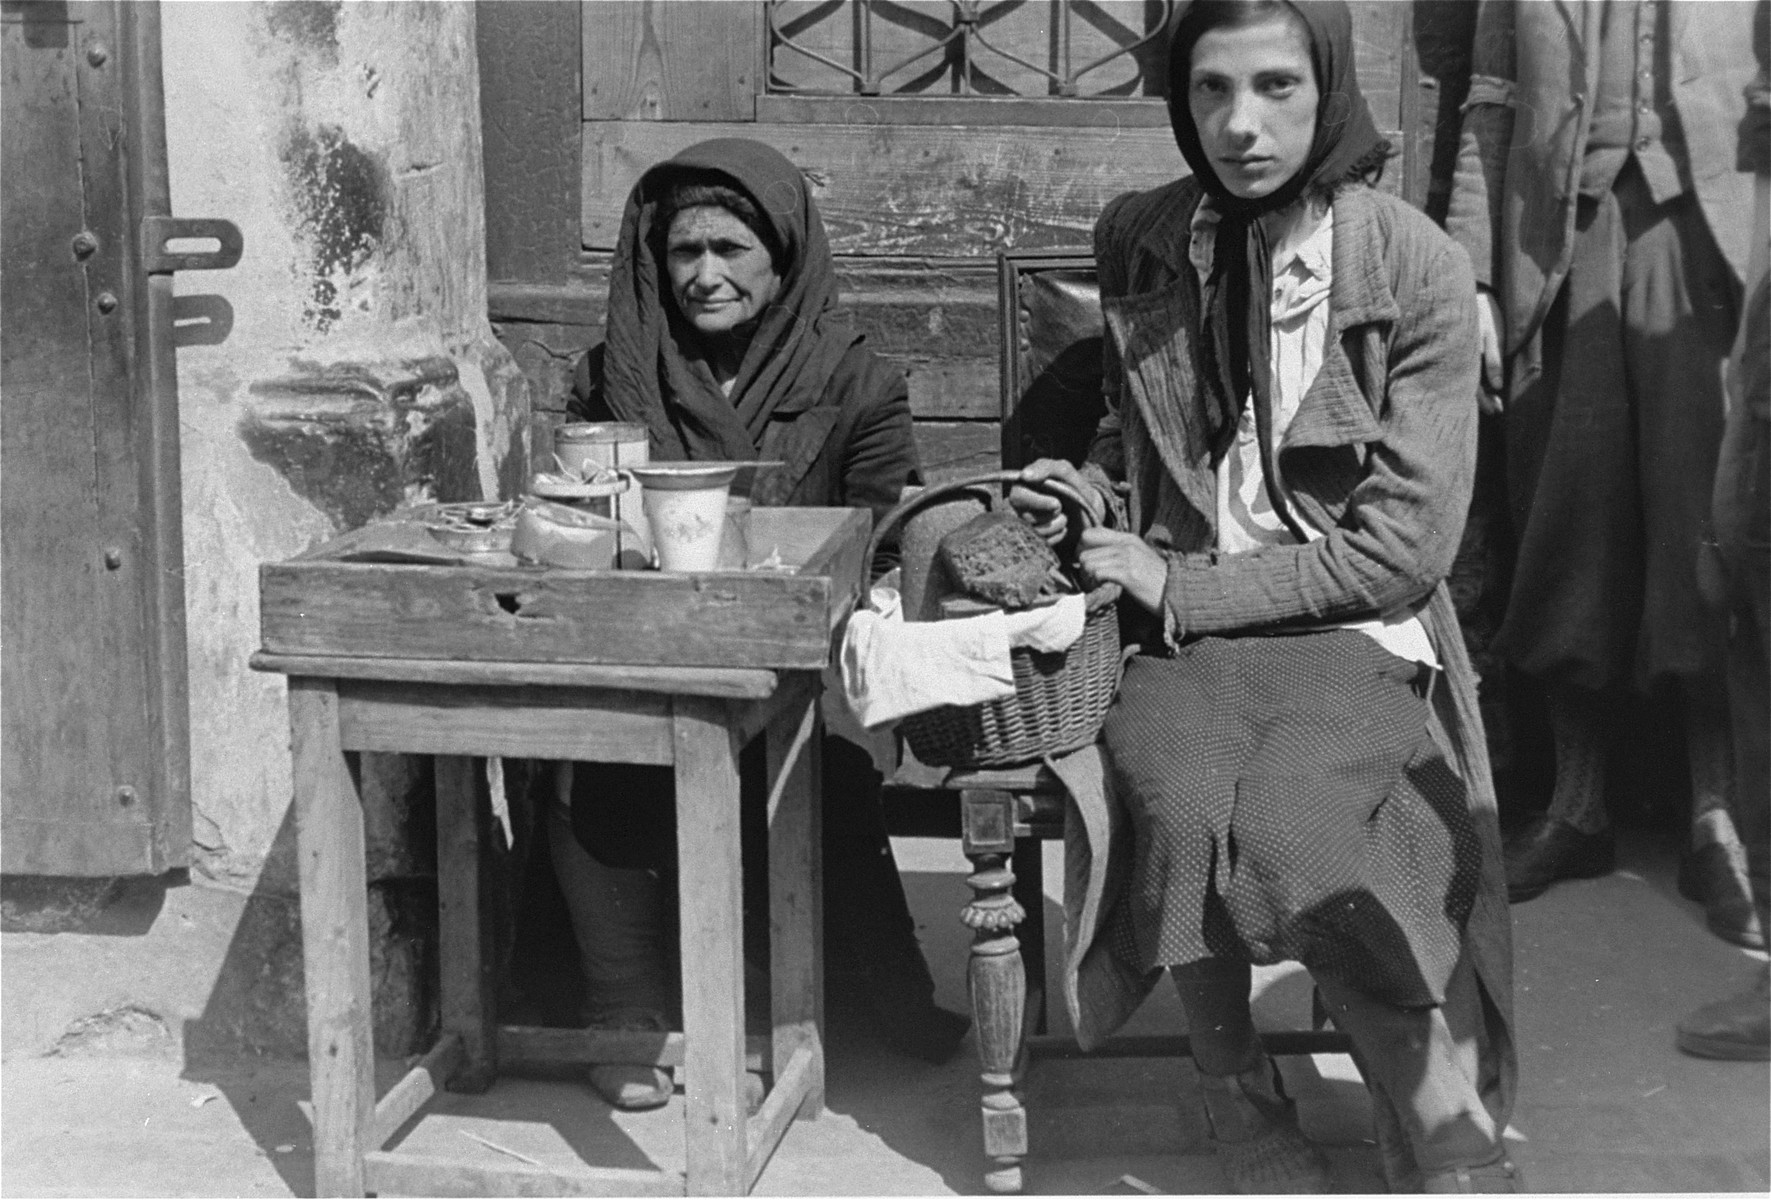 Two women sell bread and hot tea on the street in the Warsaw ghetto.